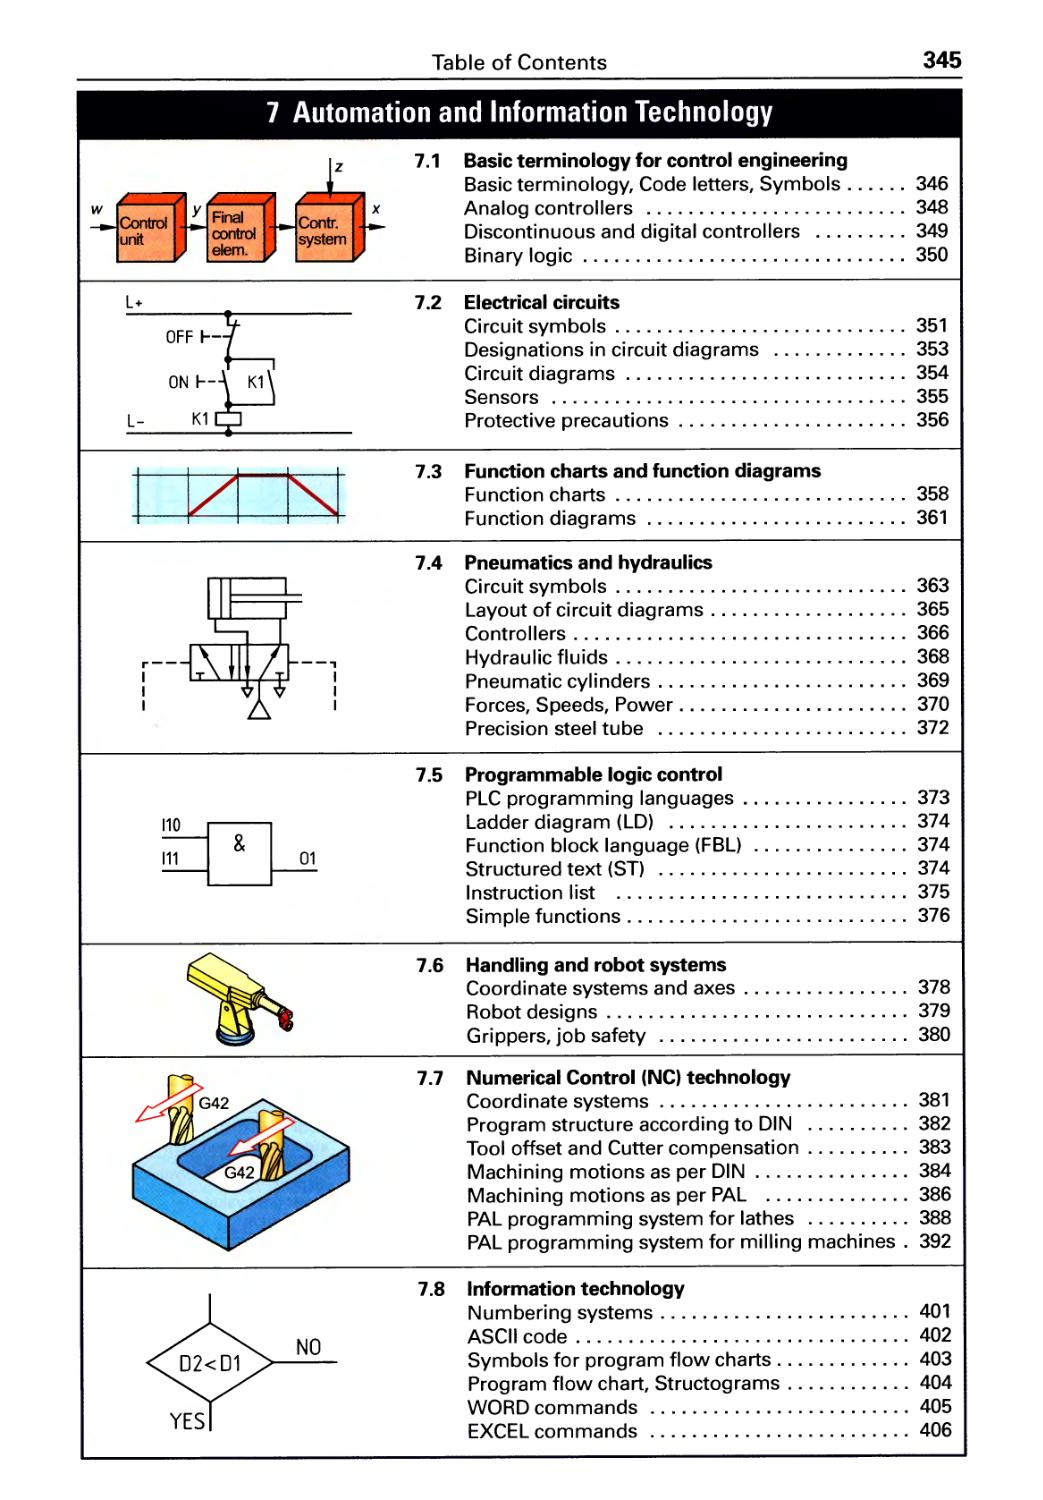 7. Automation and Information Technology